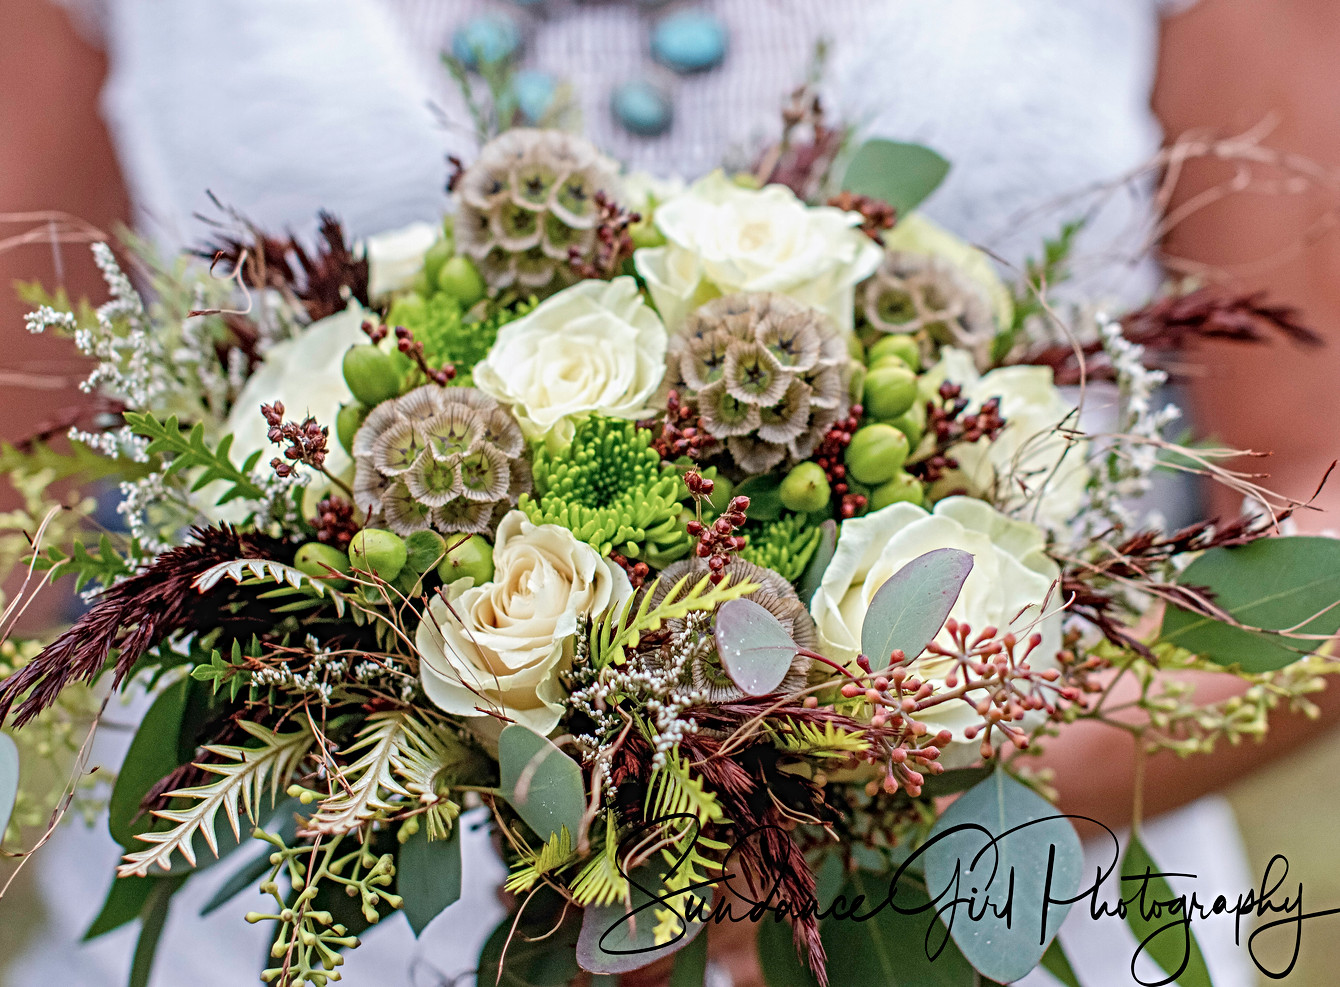 Stacey's bouquet